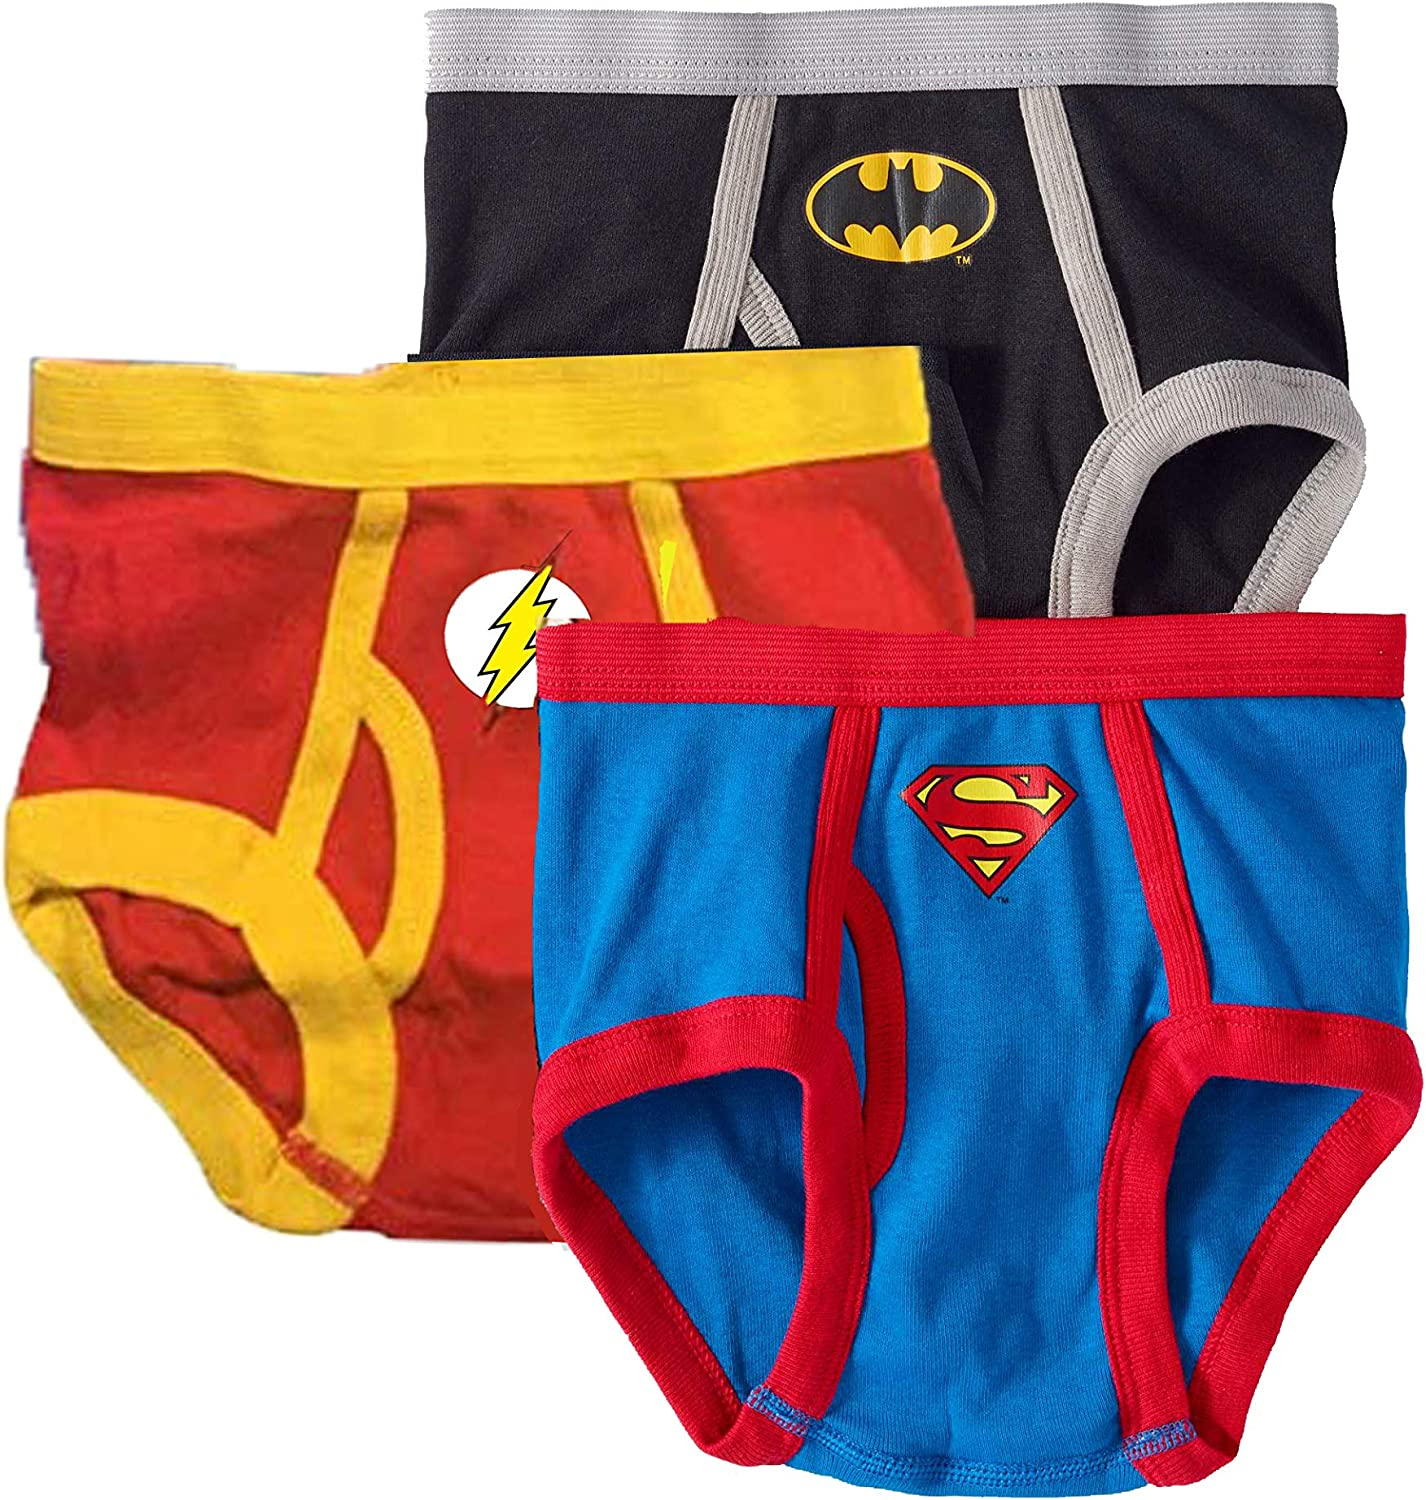 4 Marvel Justice League Boys Underwear Multi-Character 3 Pack